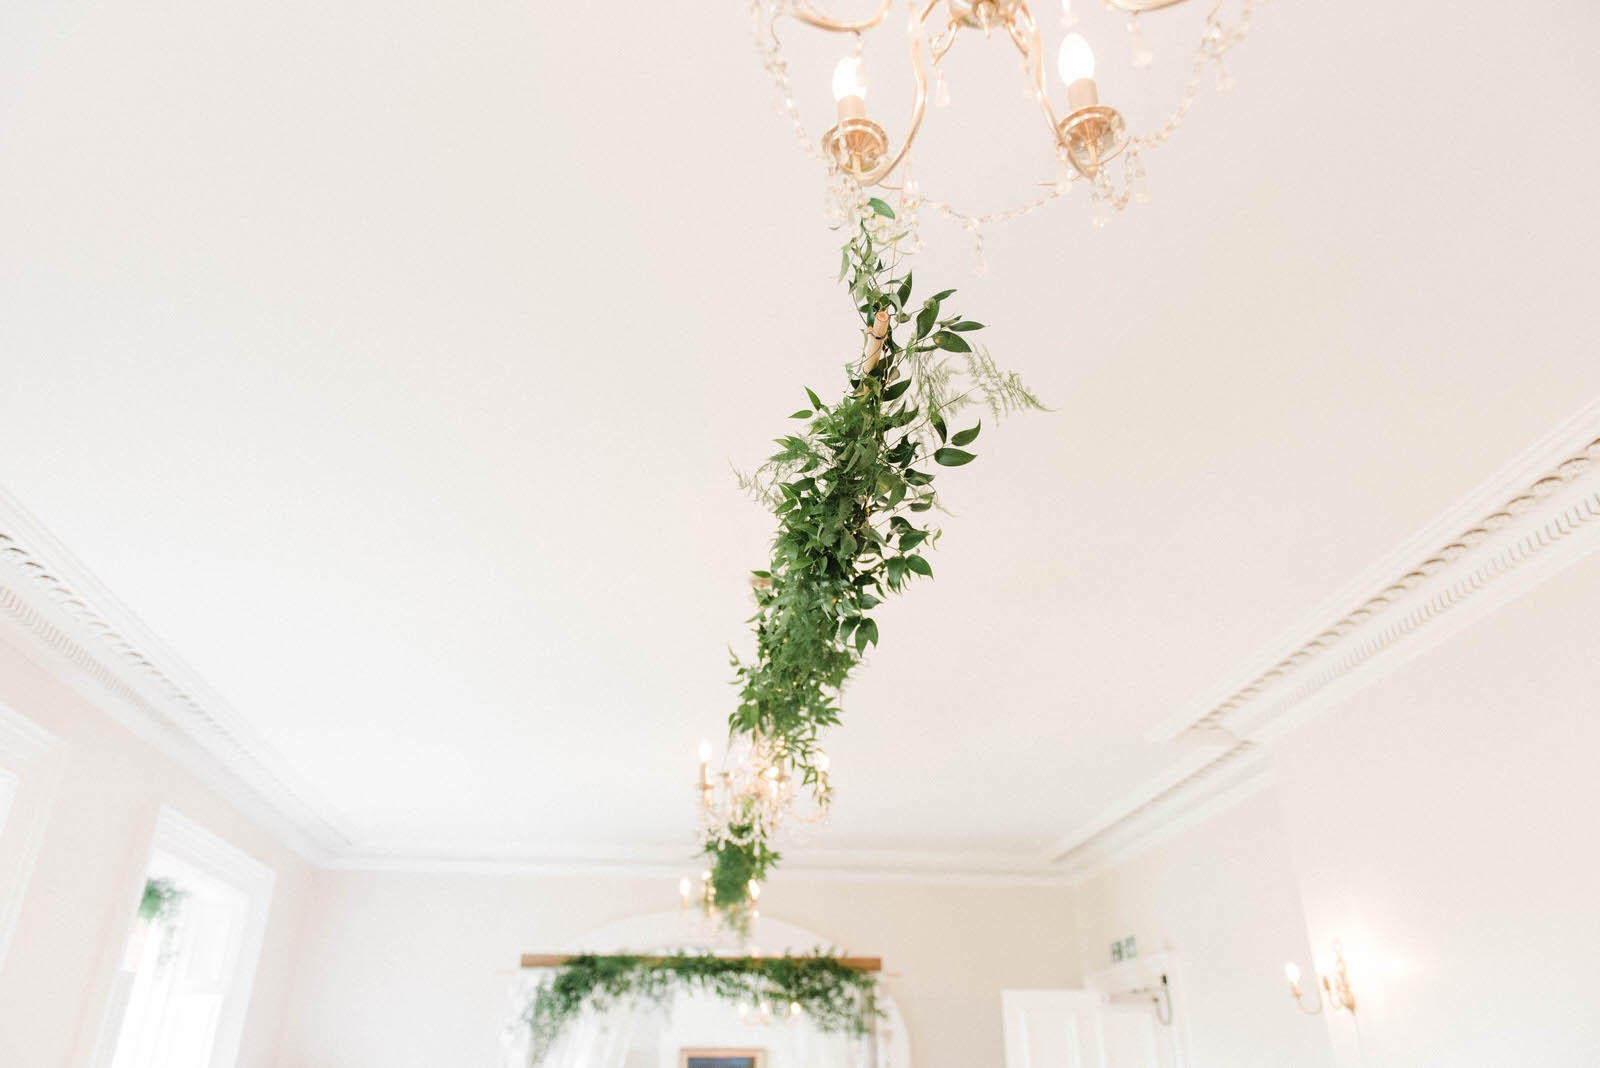 Chandeliers inside decorated with greenery and foliage at Hirst Priory wedding